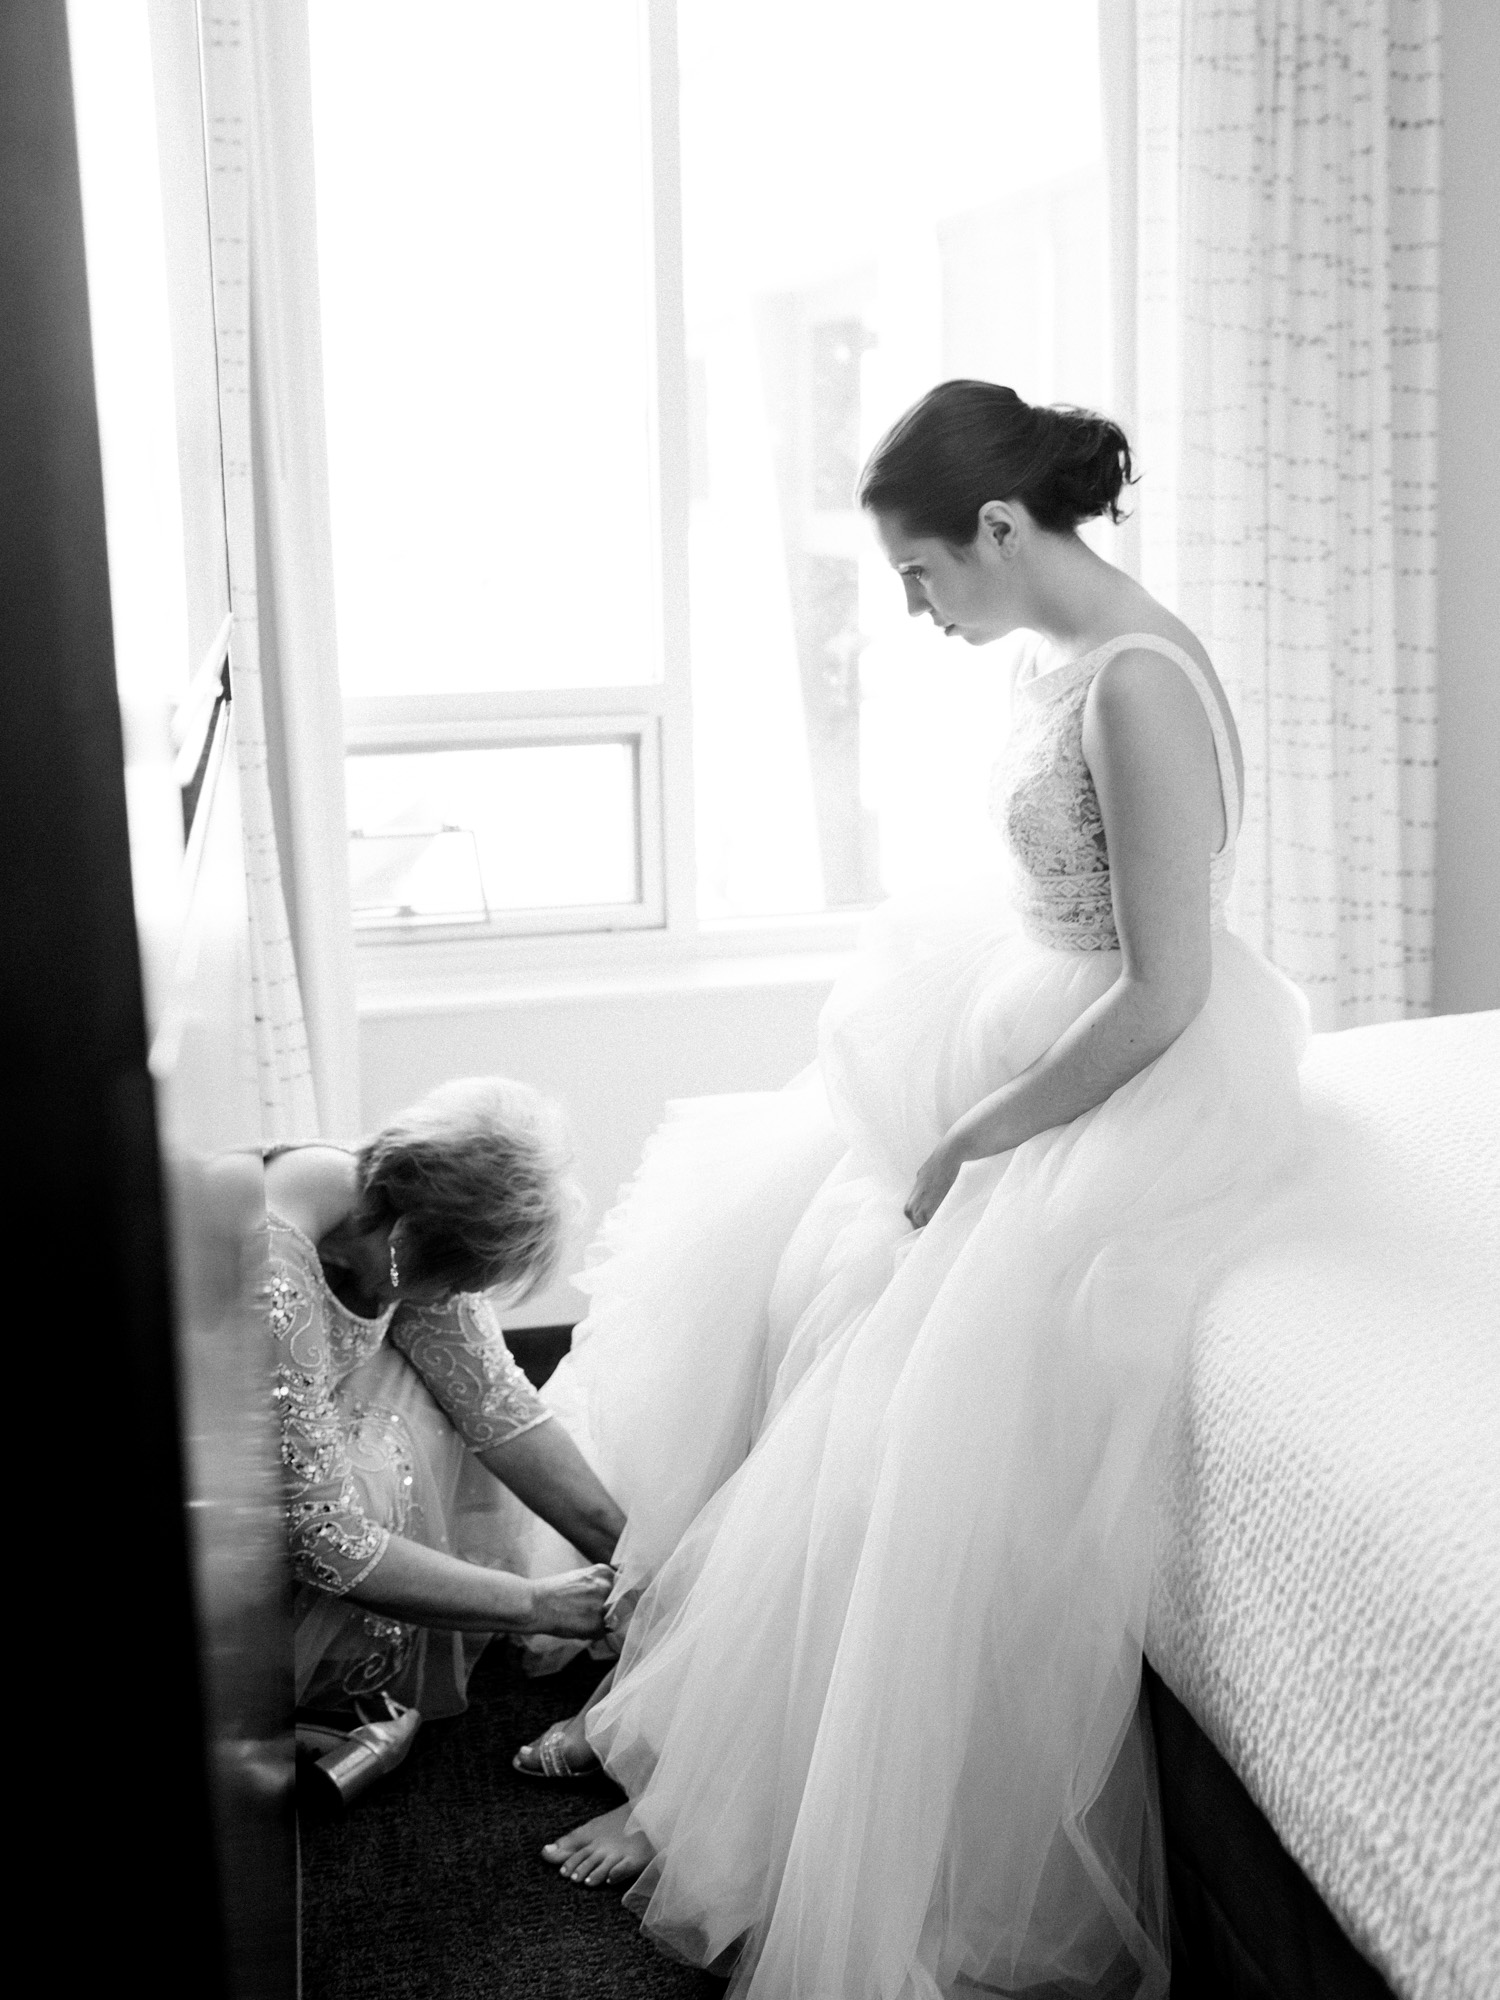 A bride sits on the hotel bed as her mother helps fasten her shoes in Ann Arbor, Michigan